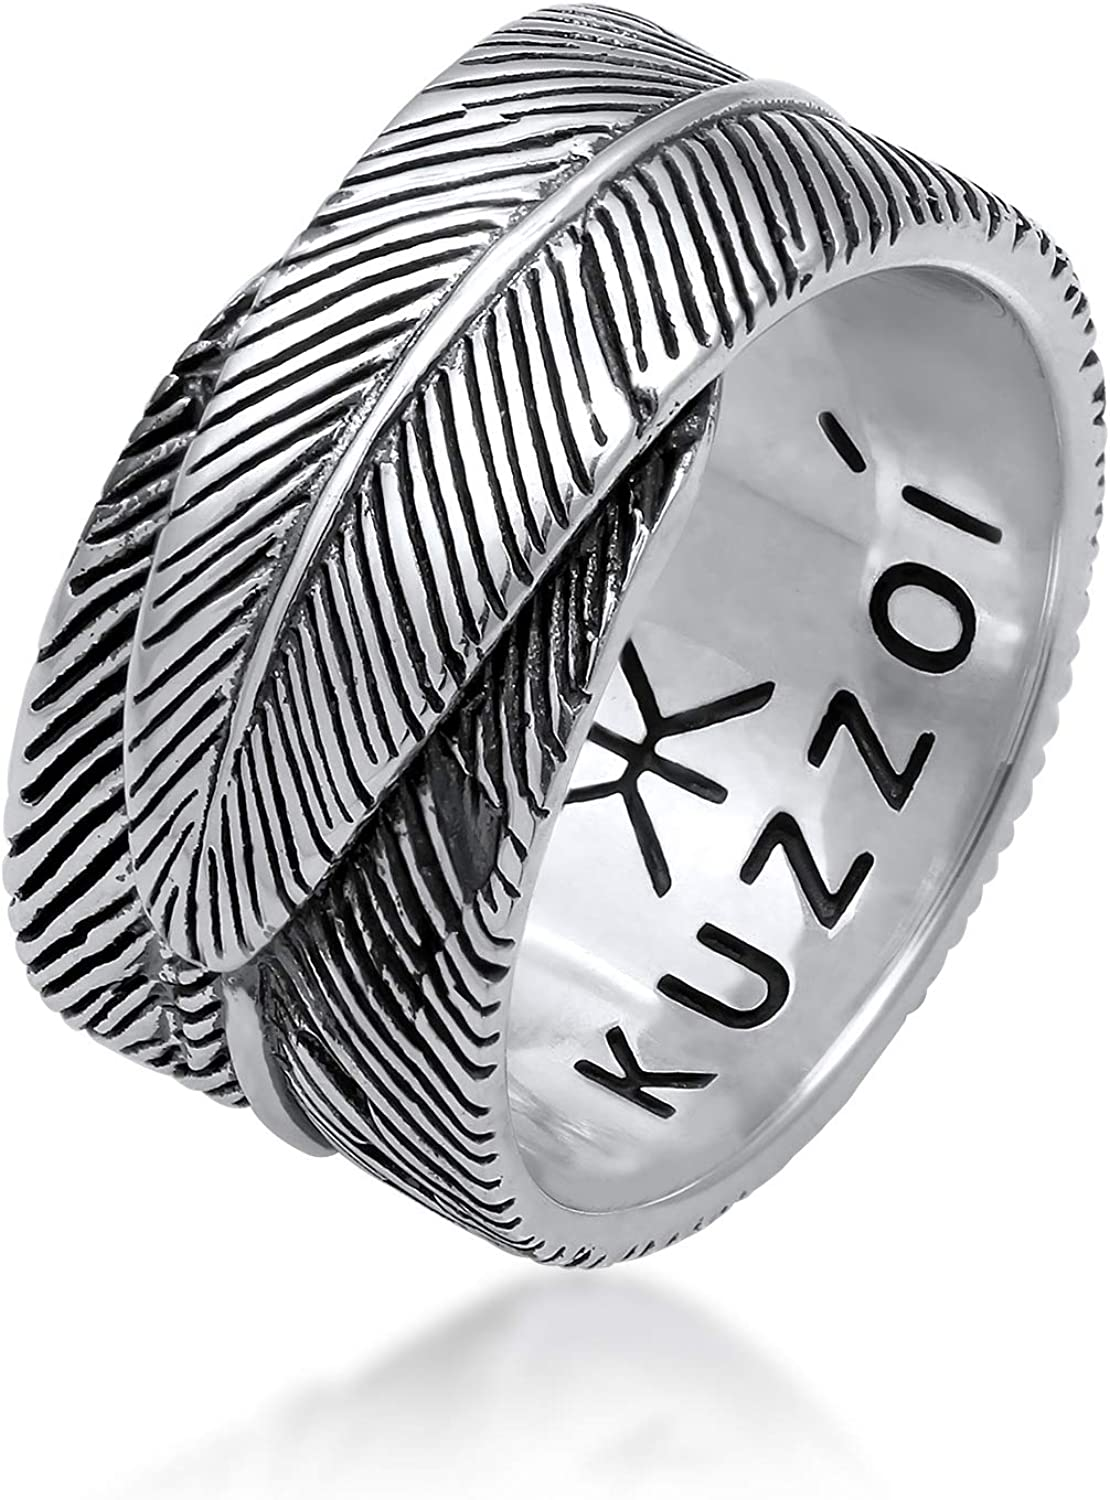 Ring Size 62 14mm in Spring Design Black Oxidized Band Ring Made of 925 Sterling Silver Ring in Vintage Look kuzzoi Men Massive Ring